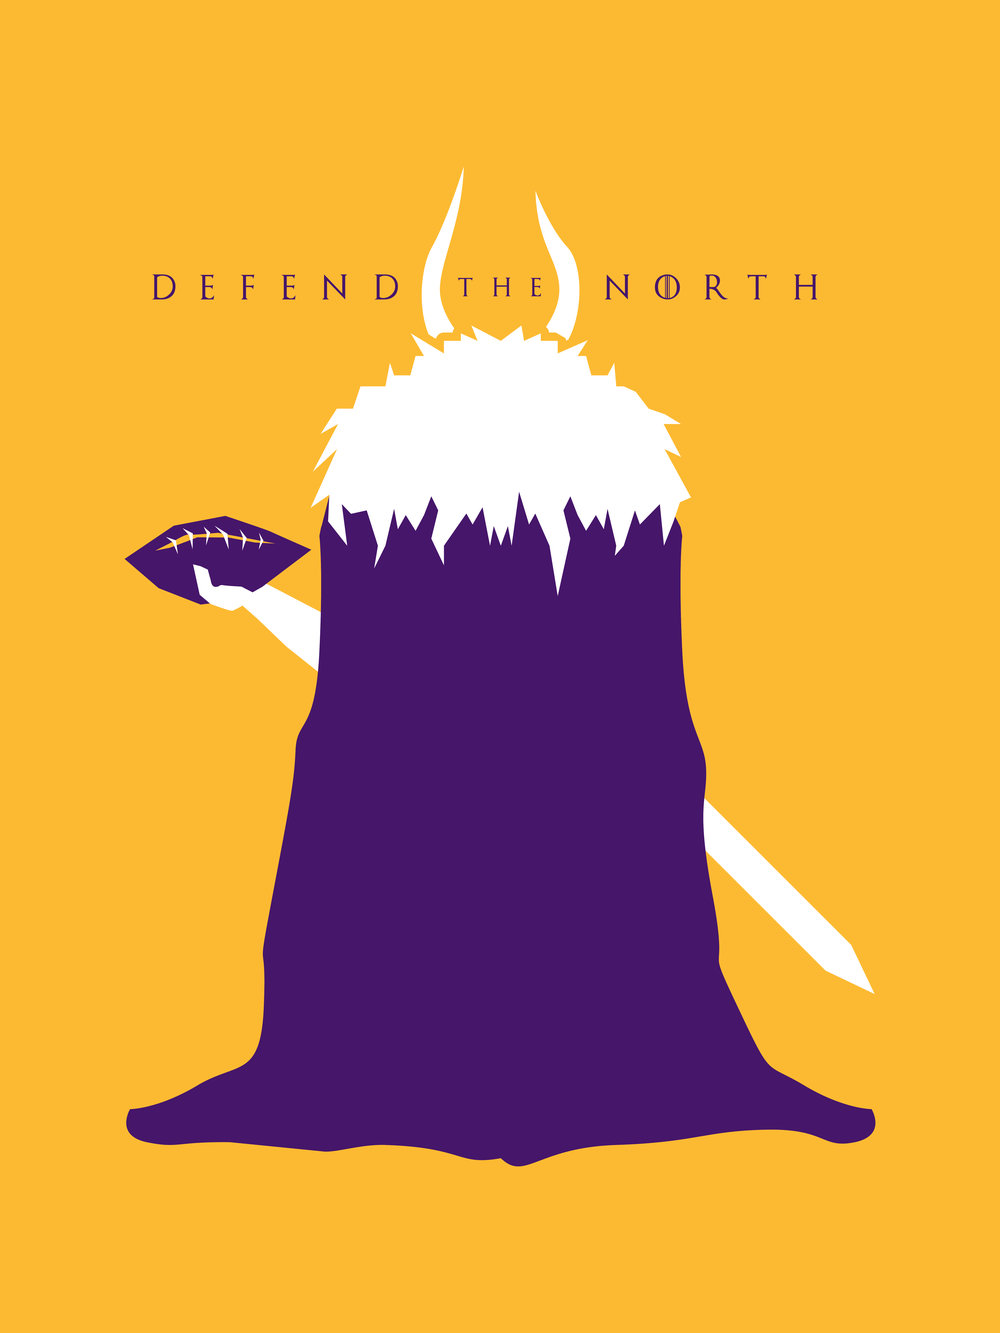 DefendTheNorth_18.jpg